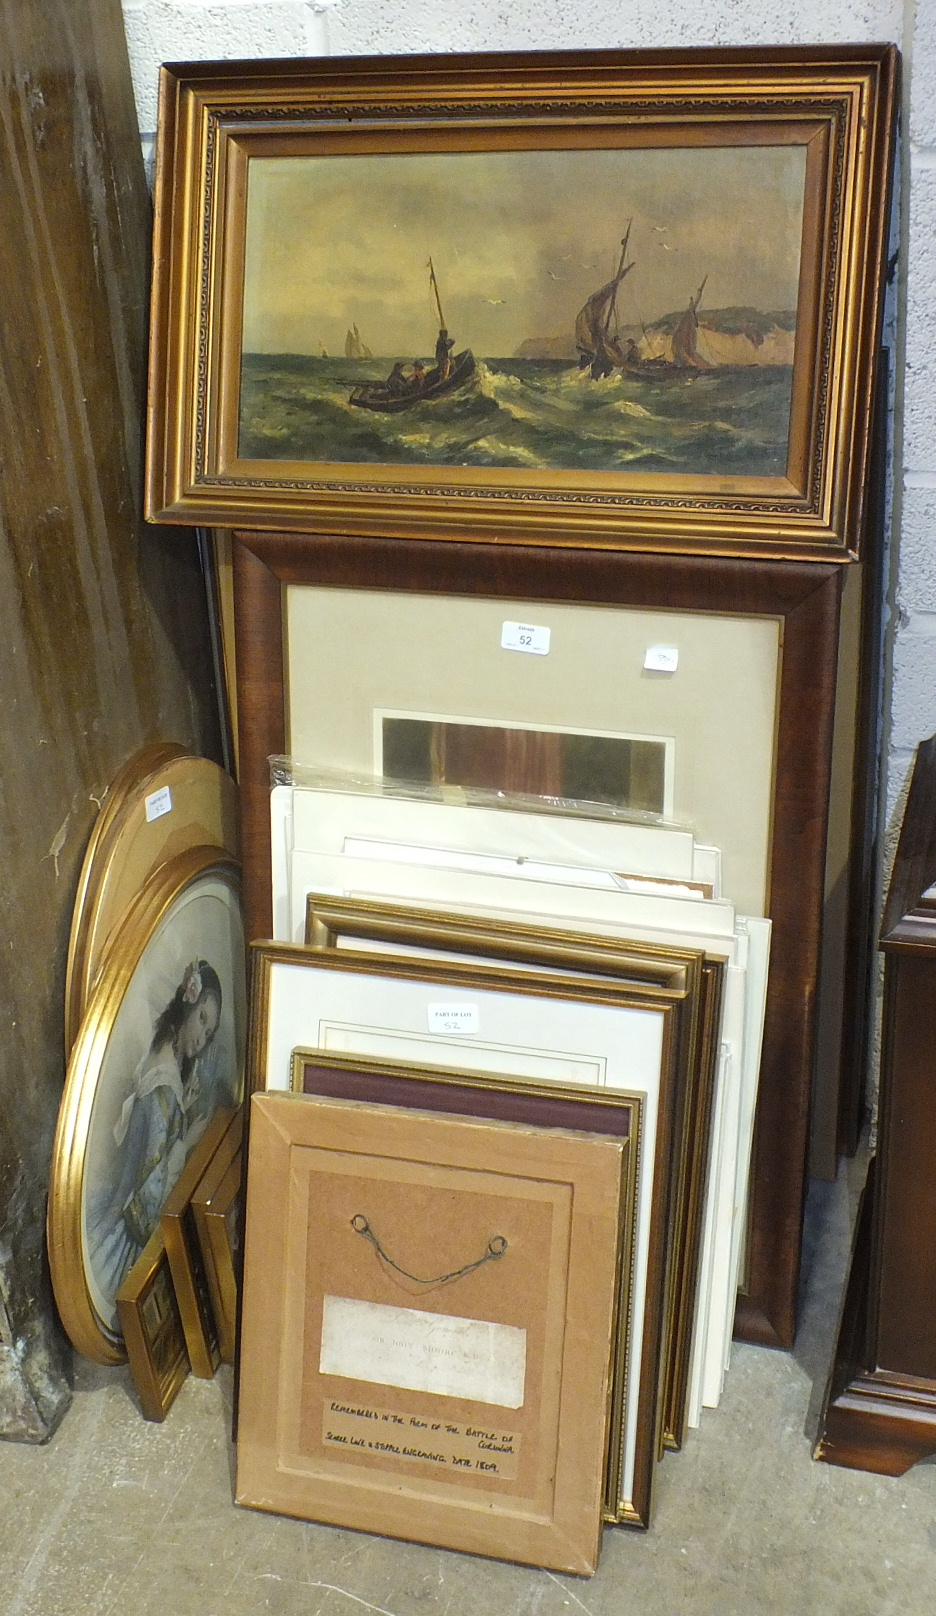 Lot 52 - A collection of various framed and unframed prints.